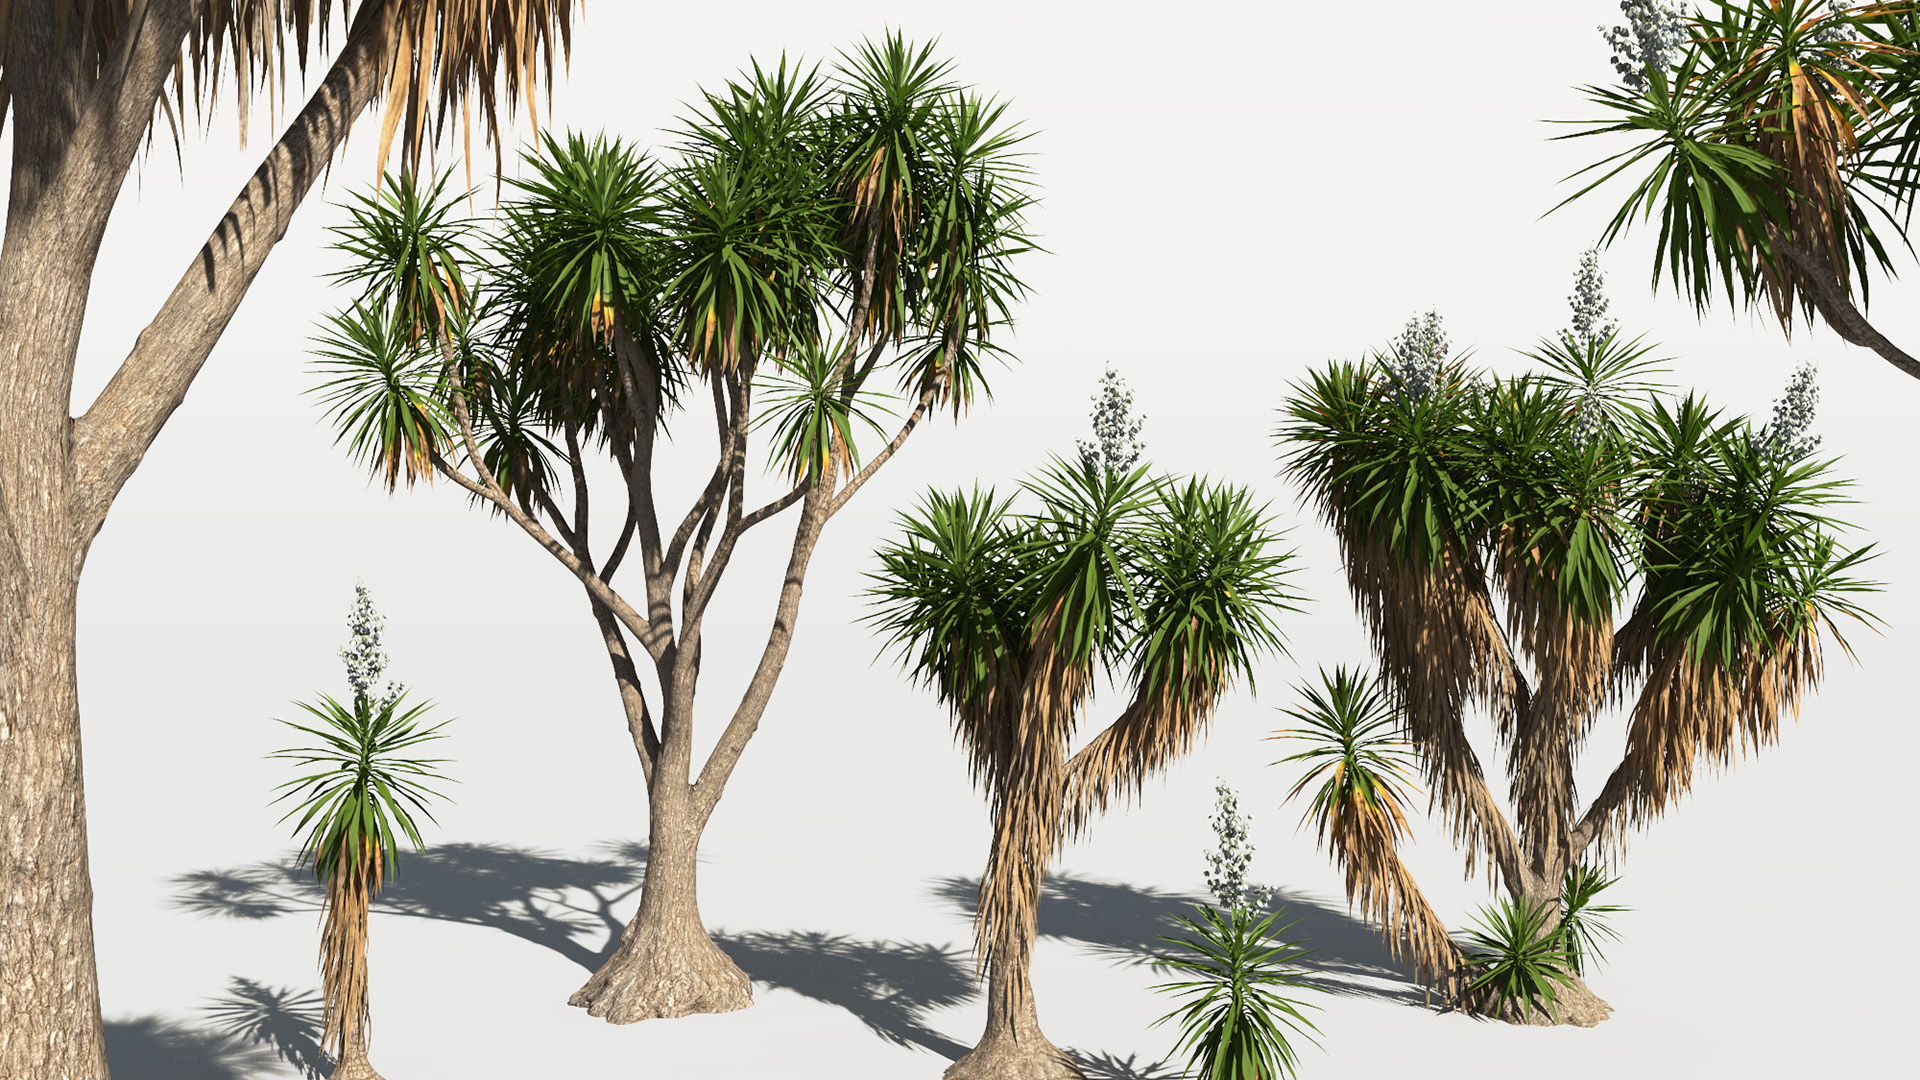 3D model of the Spineless yucca Yucca elephantipes different presets